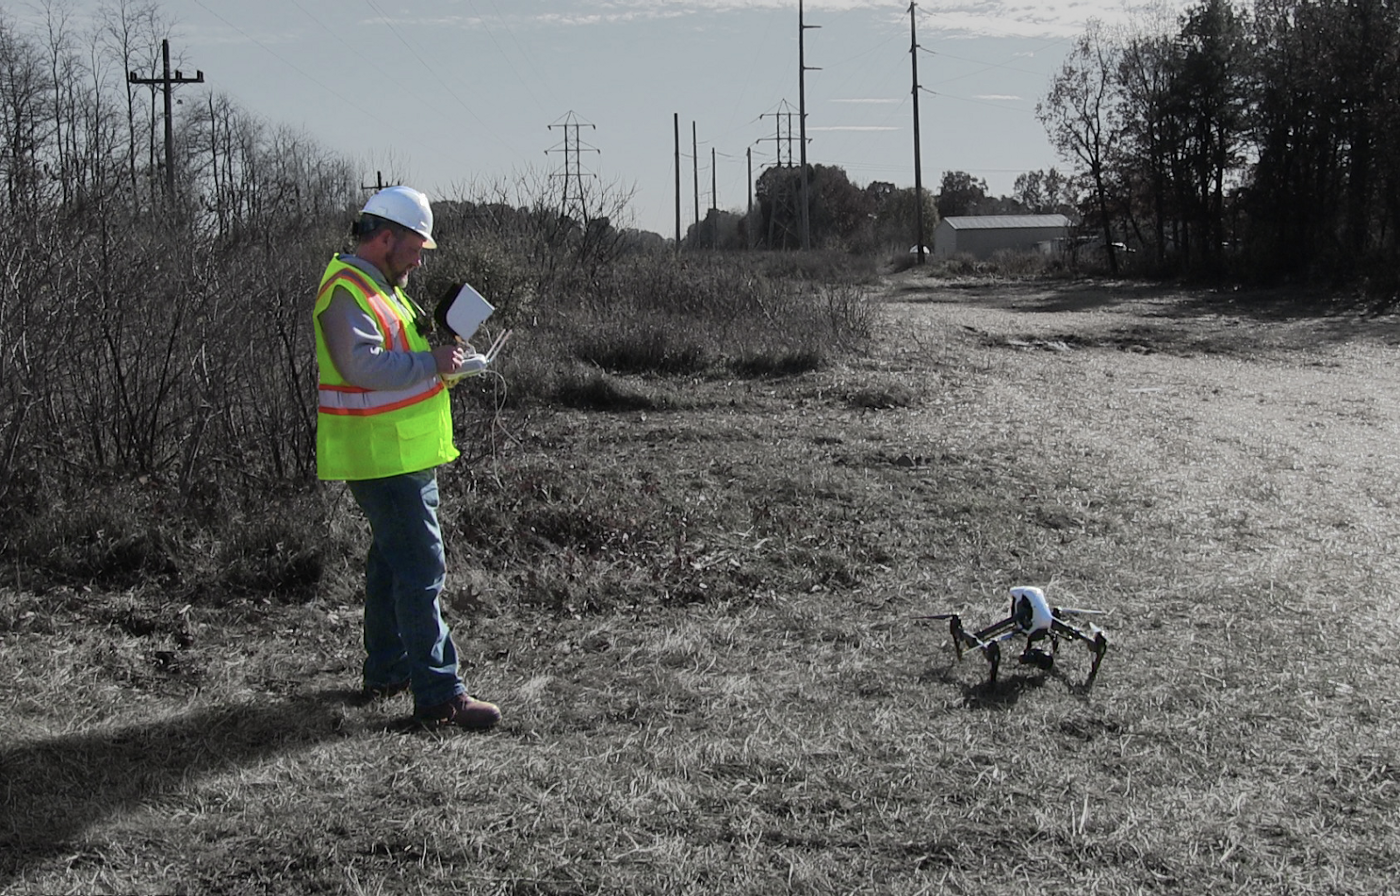 Drones in Construction: Improving Commercial Inspections and Jobsite